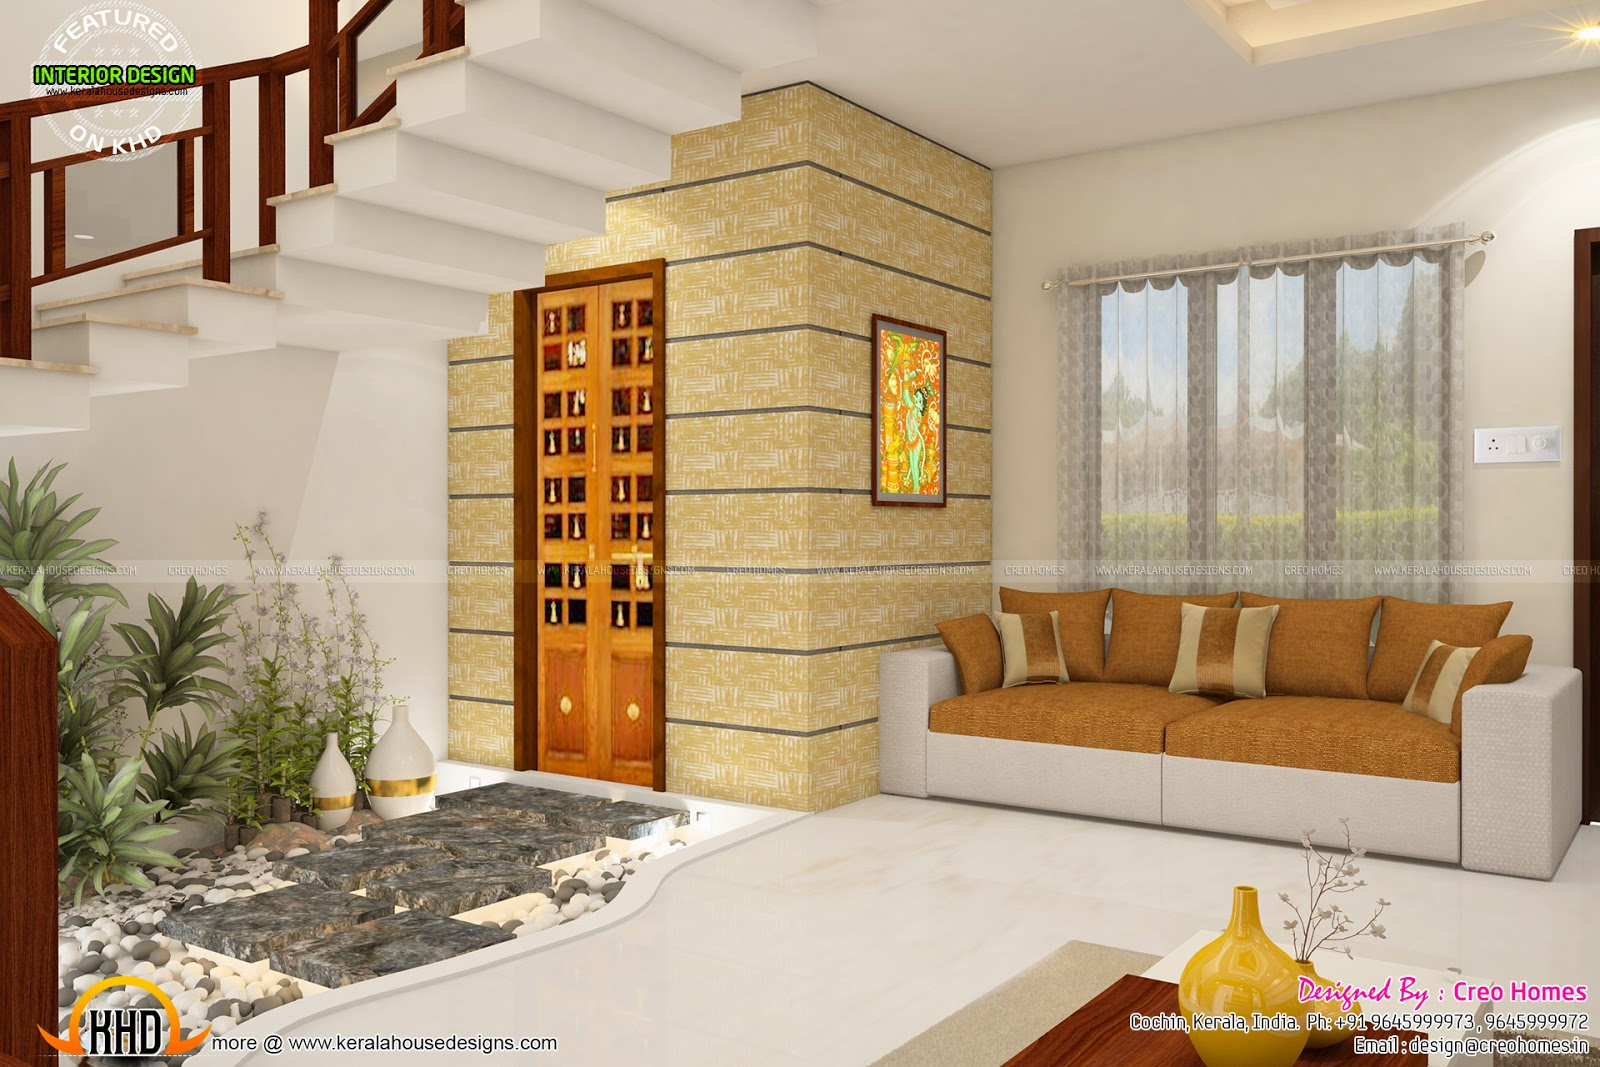 Total home interior solutions by creo homes kerala home for House interior design photos